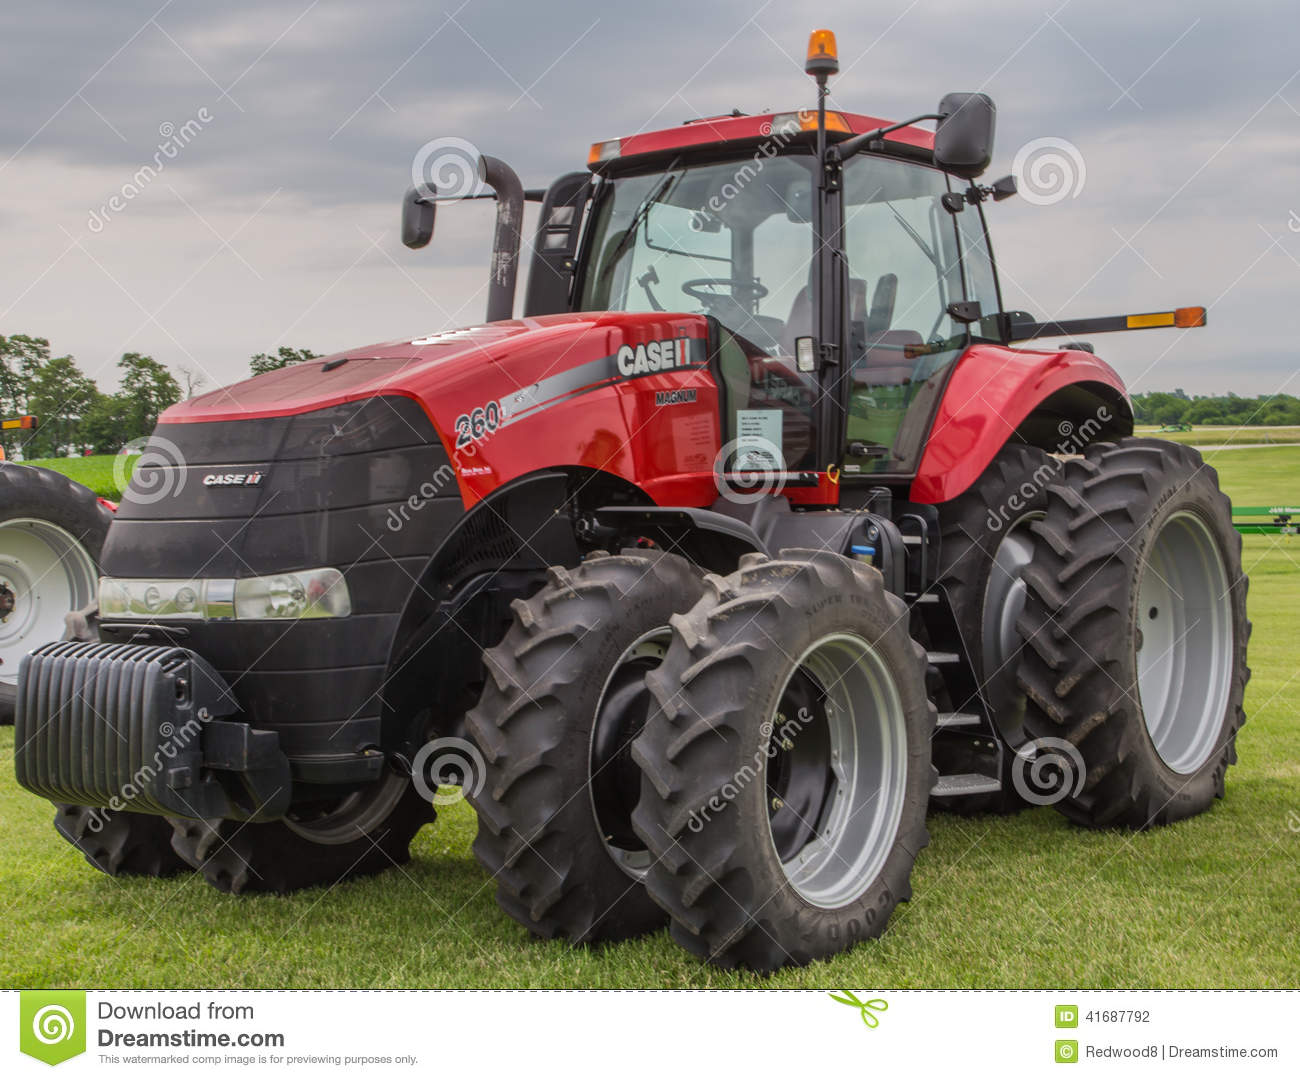 Case Tractors Four Wheel Drive : Case ih model farm tractor editorial photography